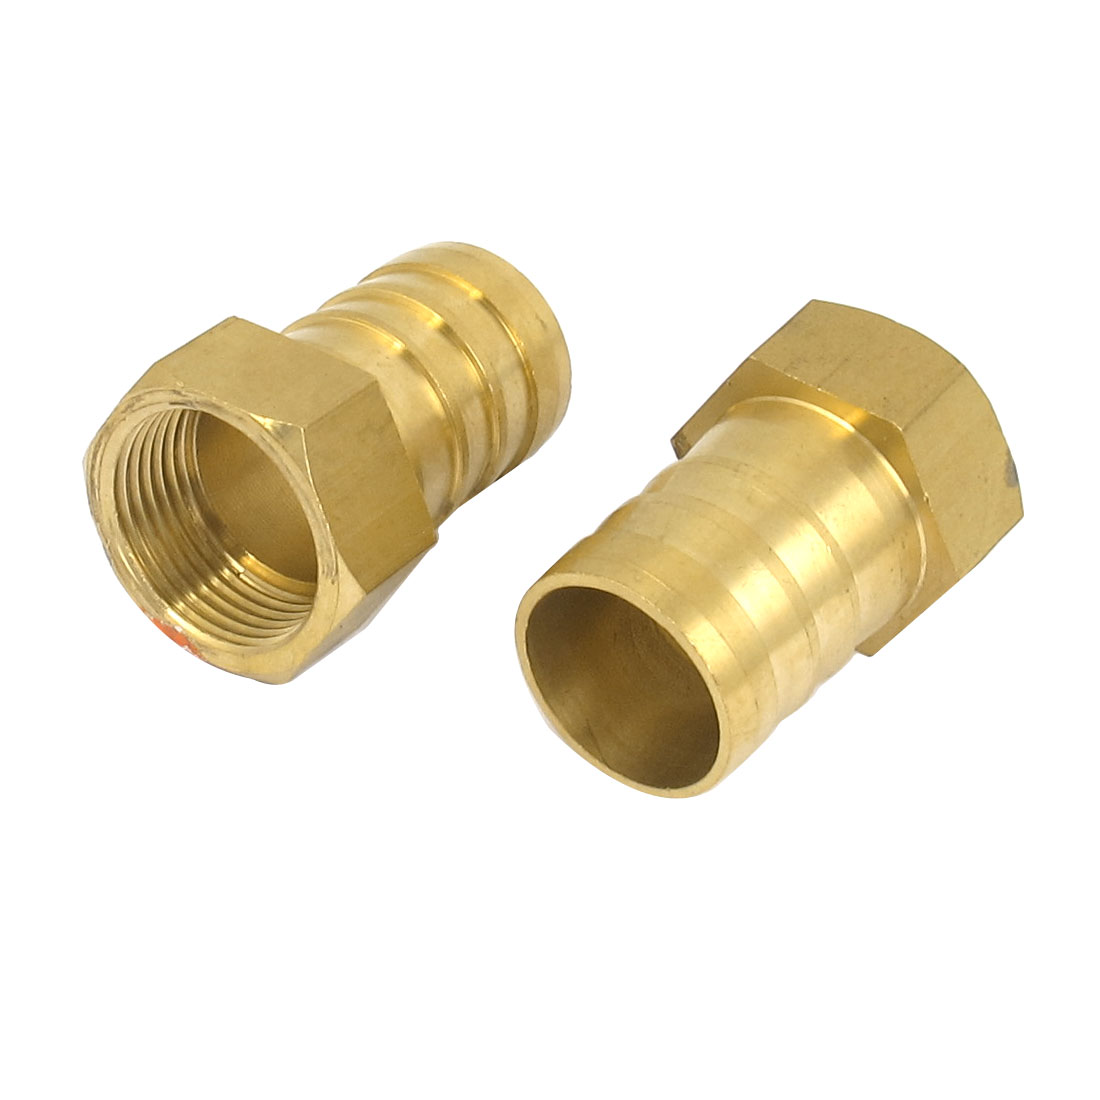 Brass 25mm Hose Barb 3/4BSP Female Thread Quick Joint Connector Adapter 2PCS